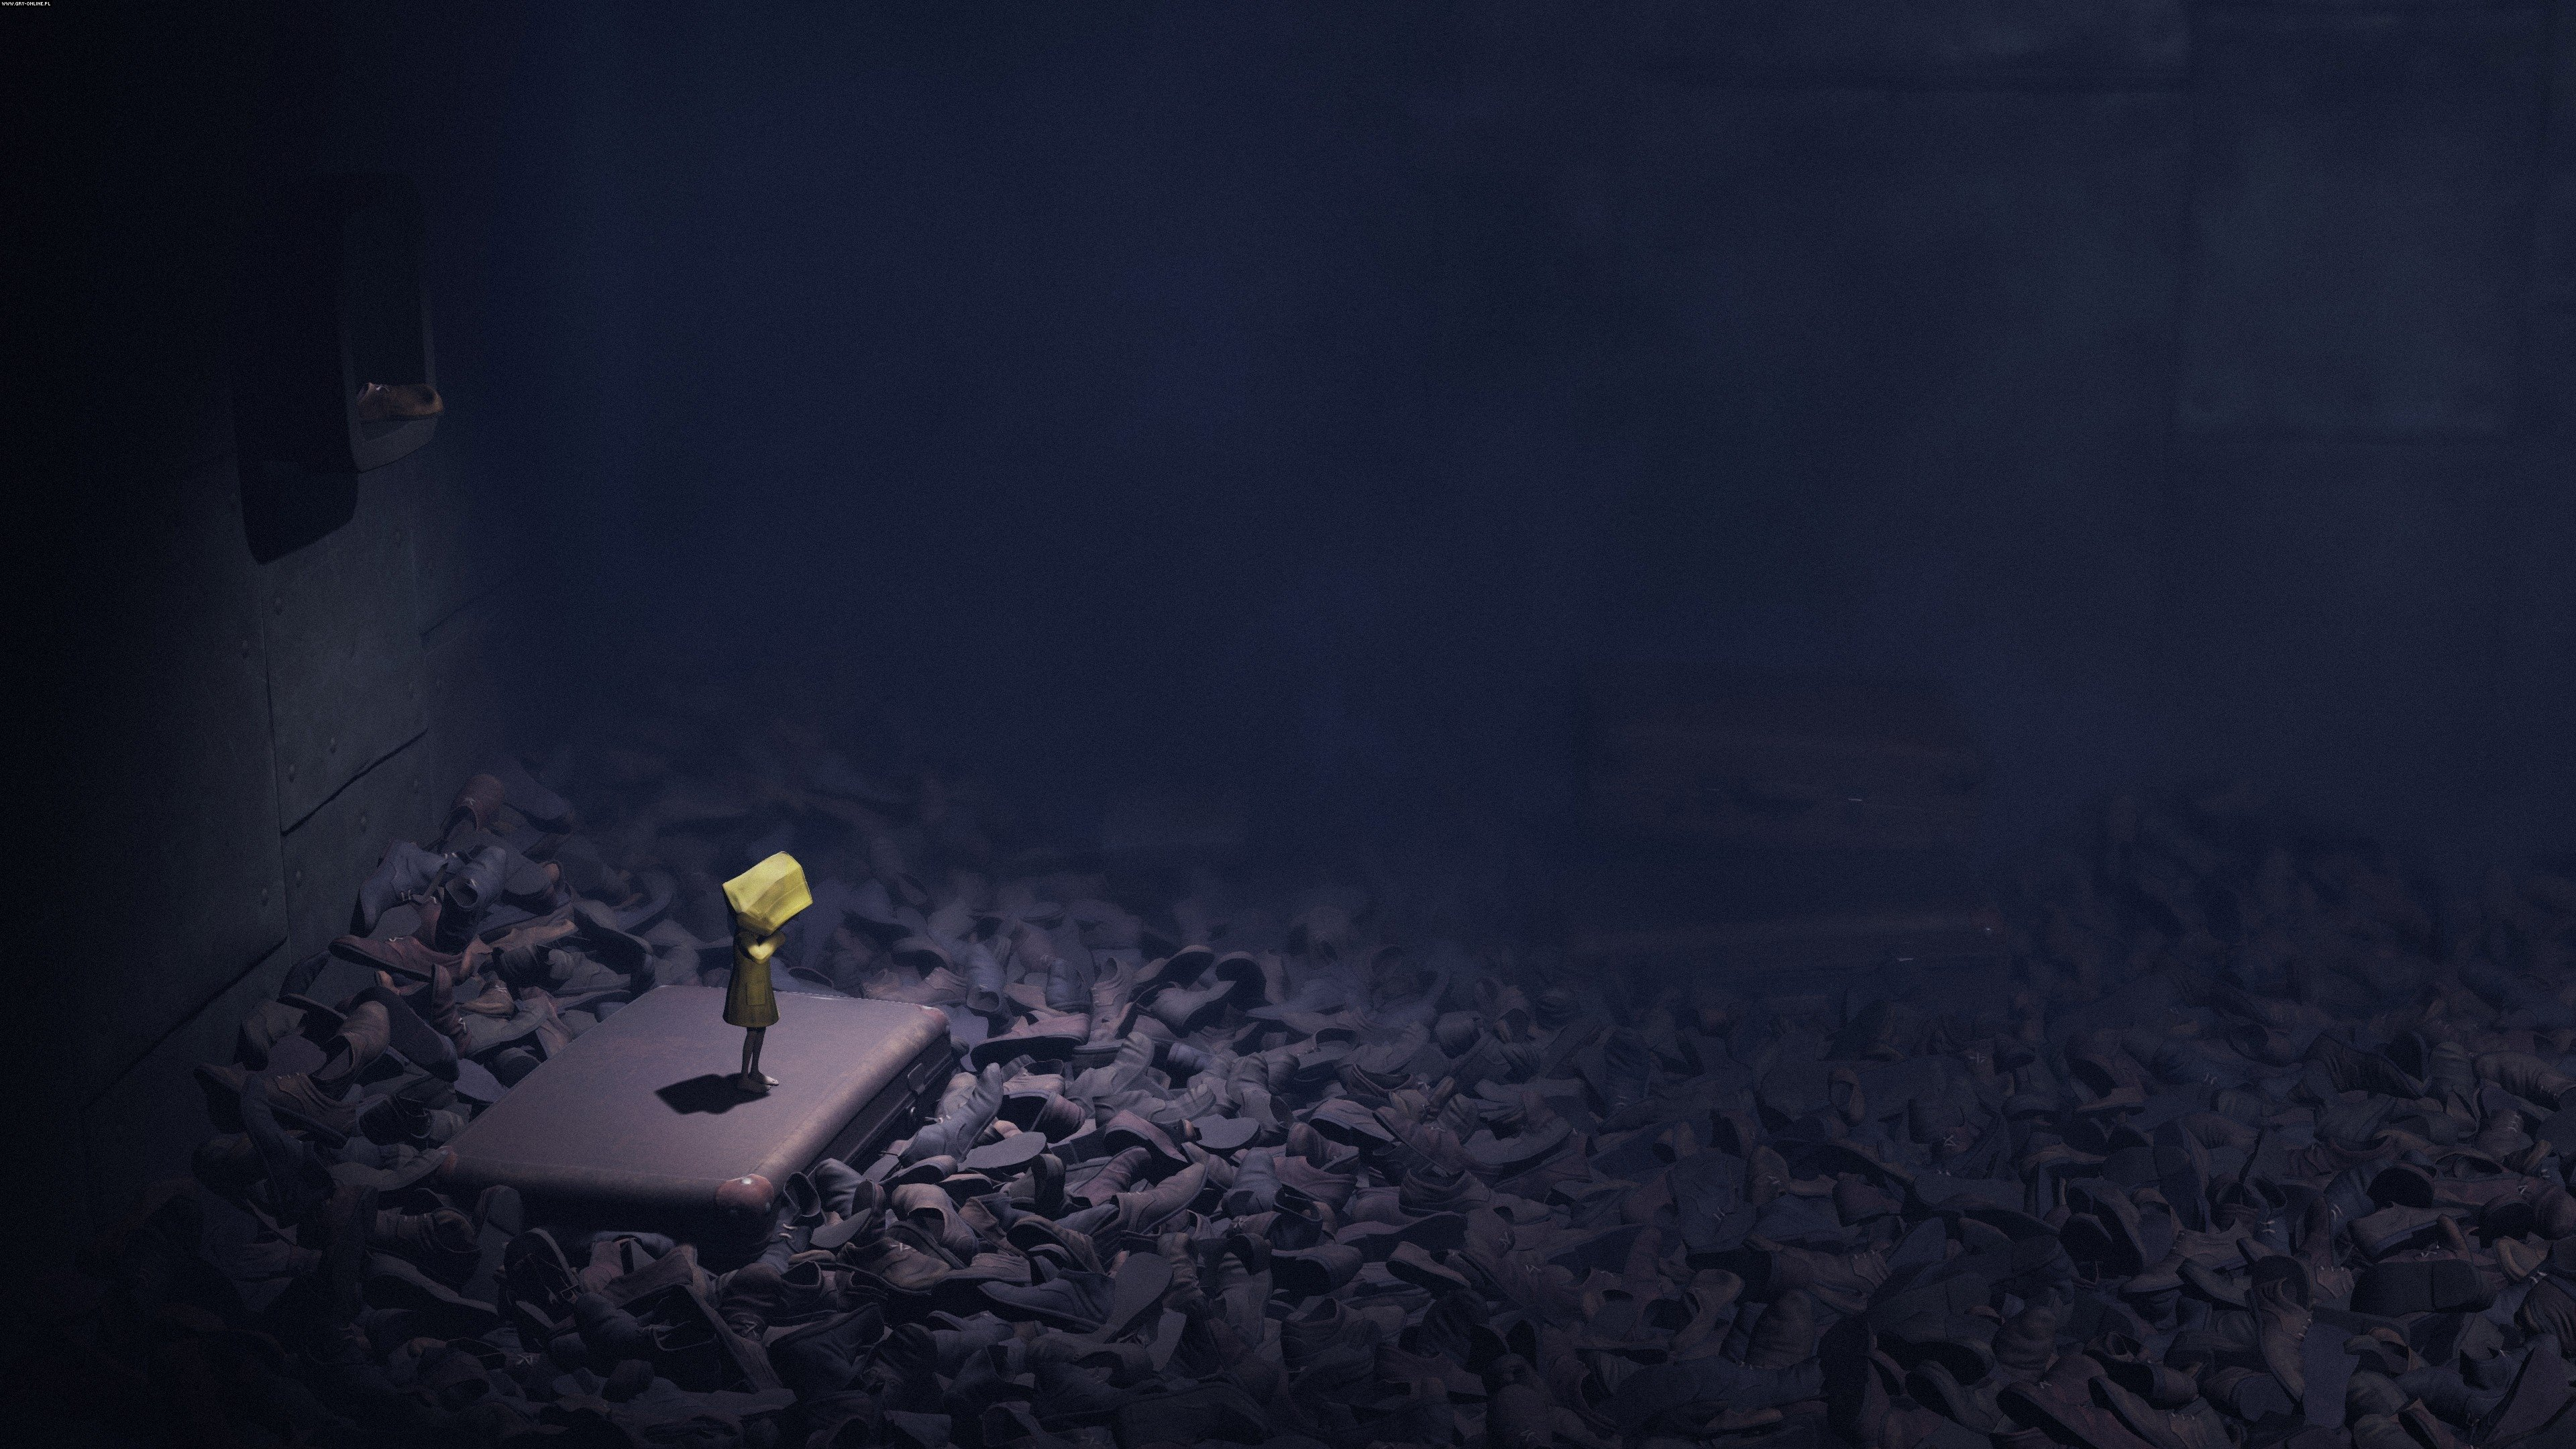 Little Nightmares PS4 Games Image 5/15, Tarsier Studios, Bandai Namco Entertainment